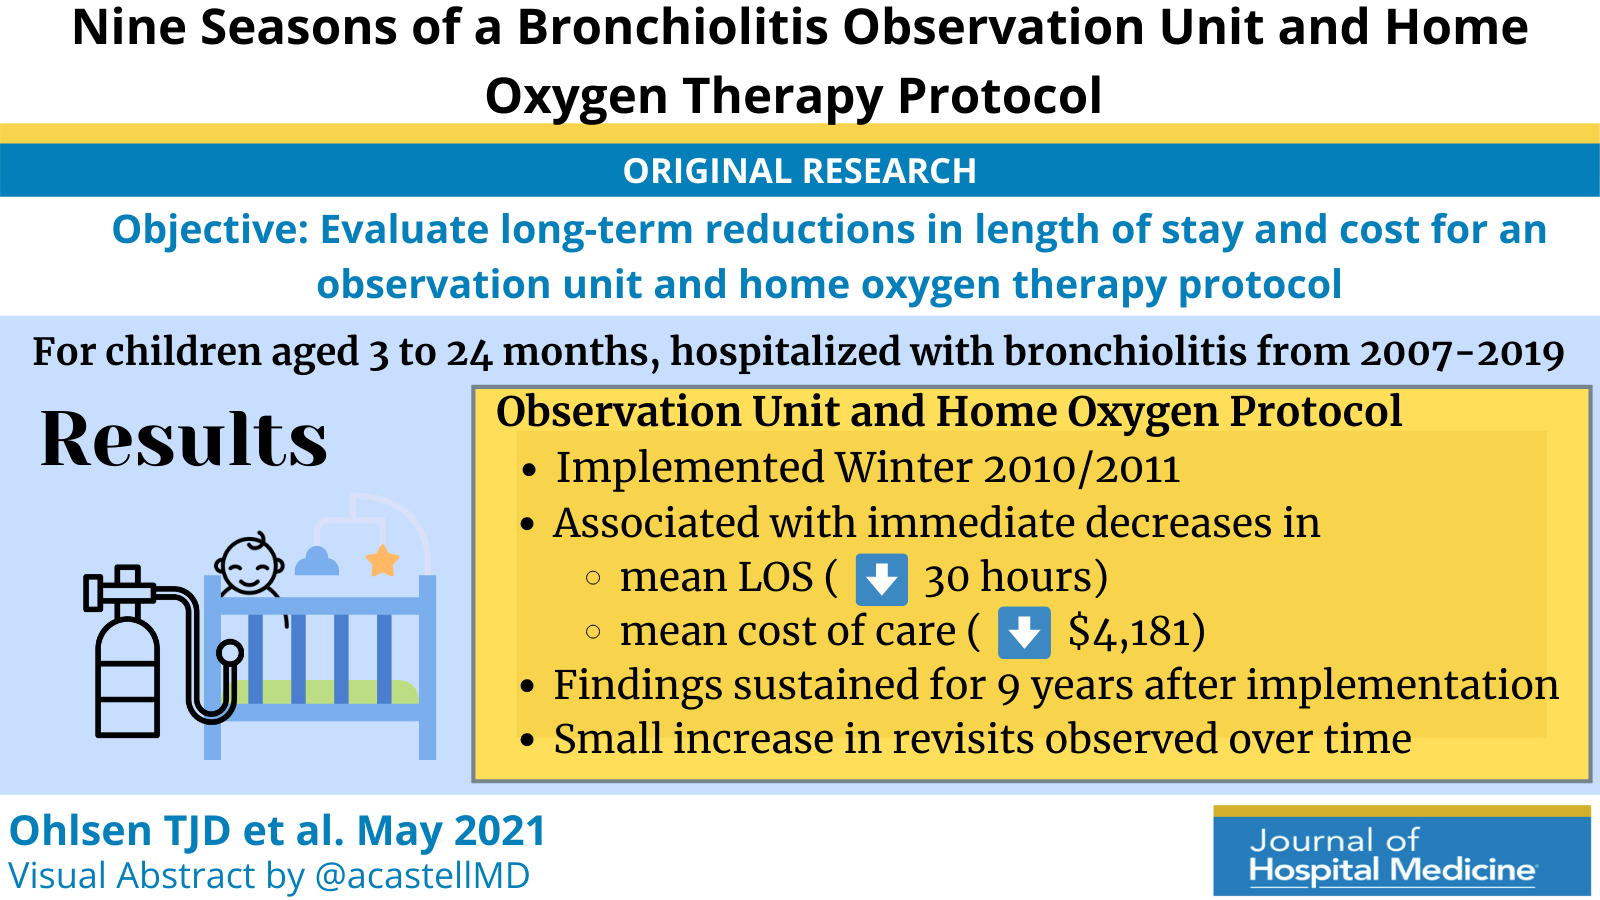 Nine Seasons of a Bronchiolitis Observation Unit and Home Oxygen Therapy Protocol